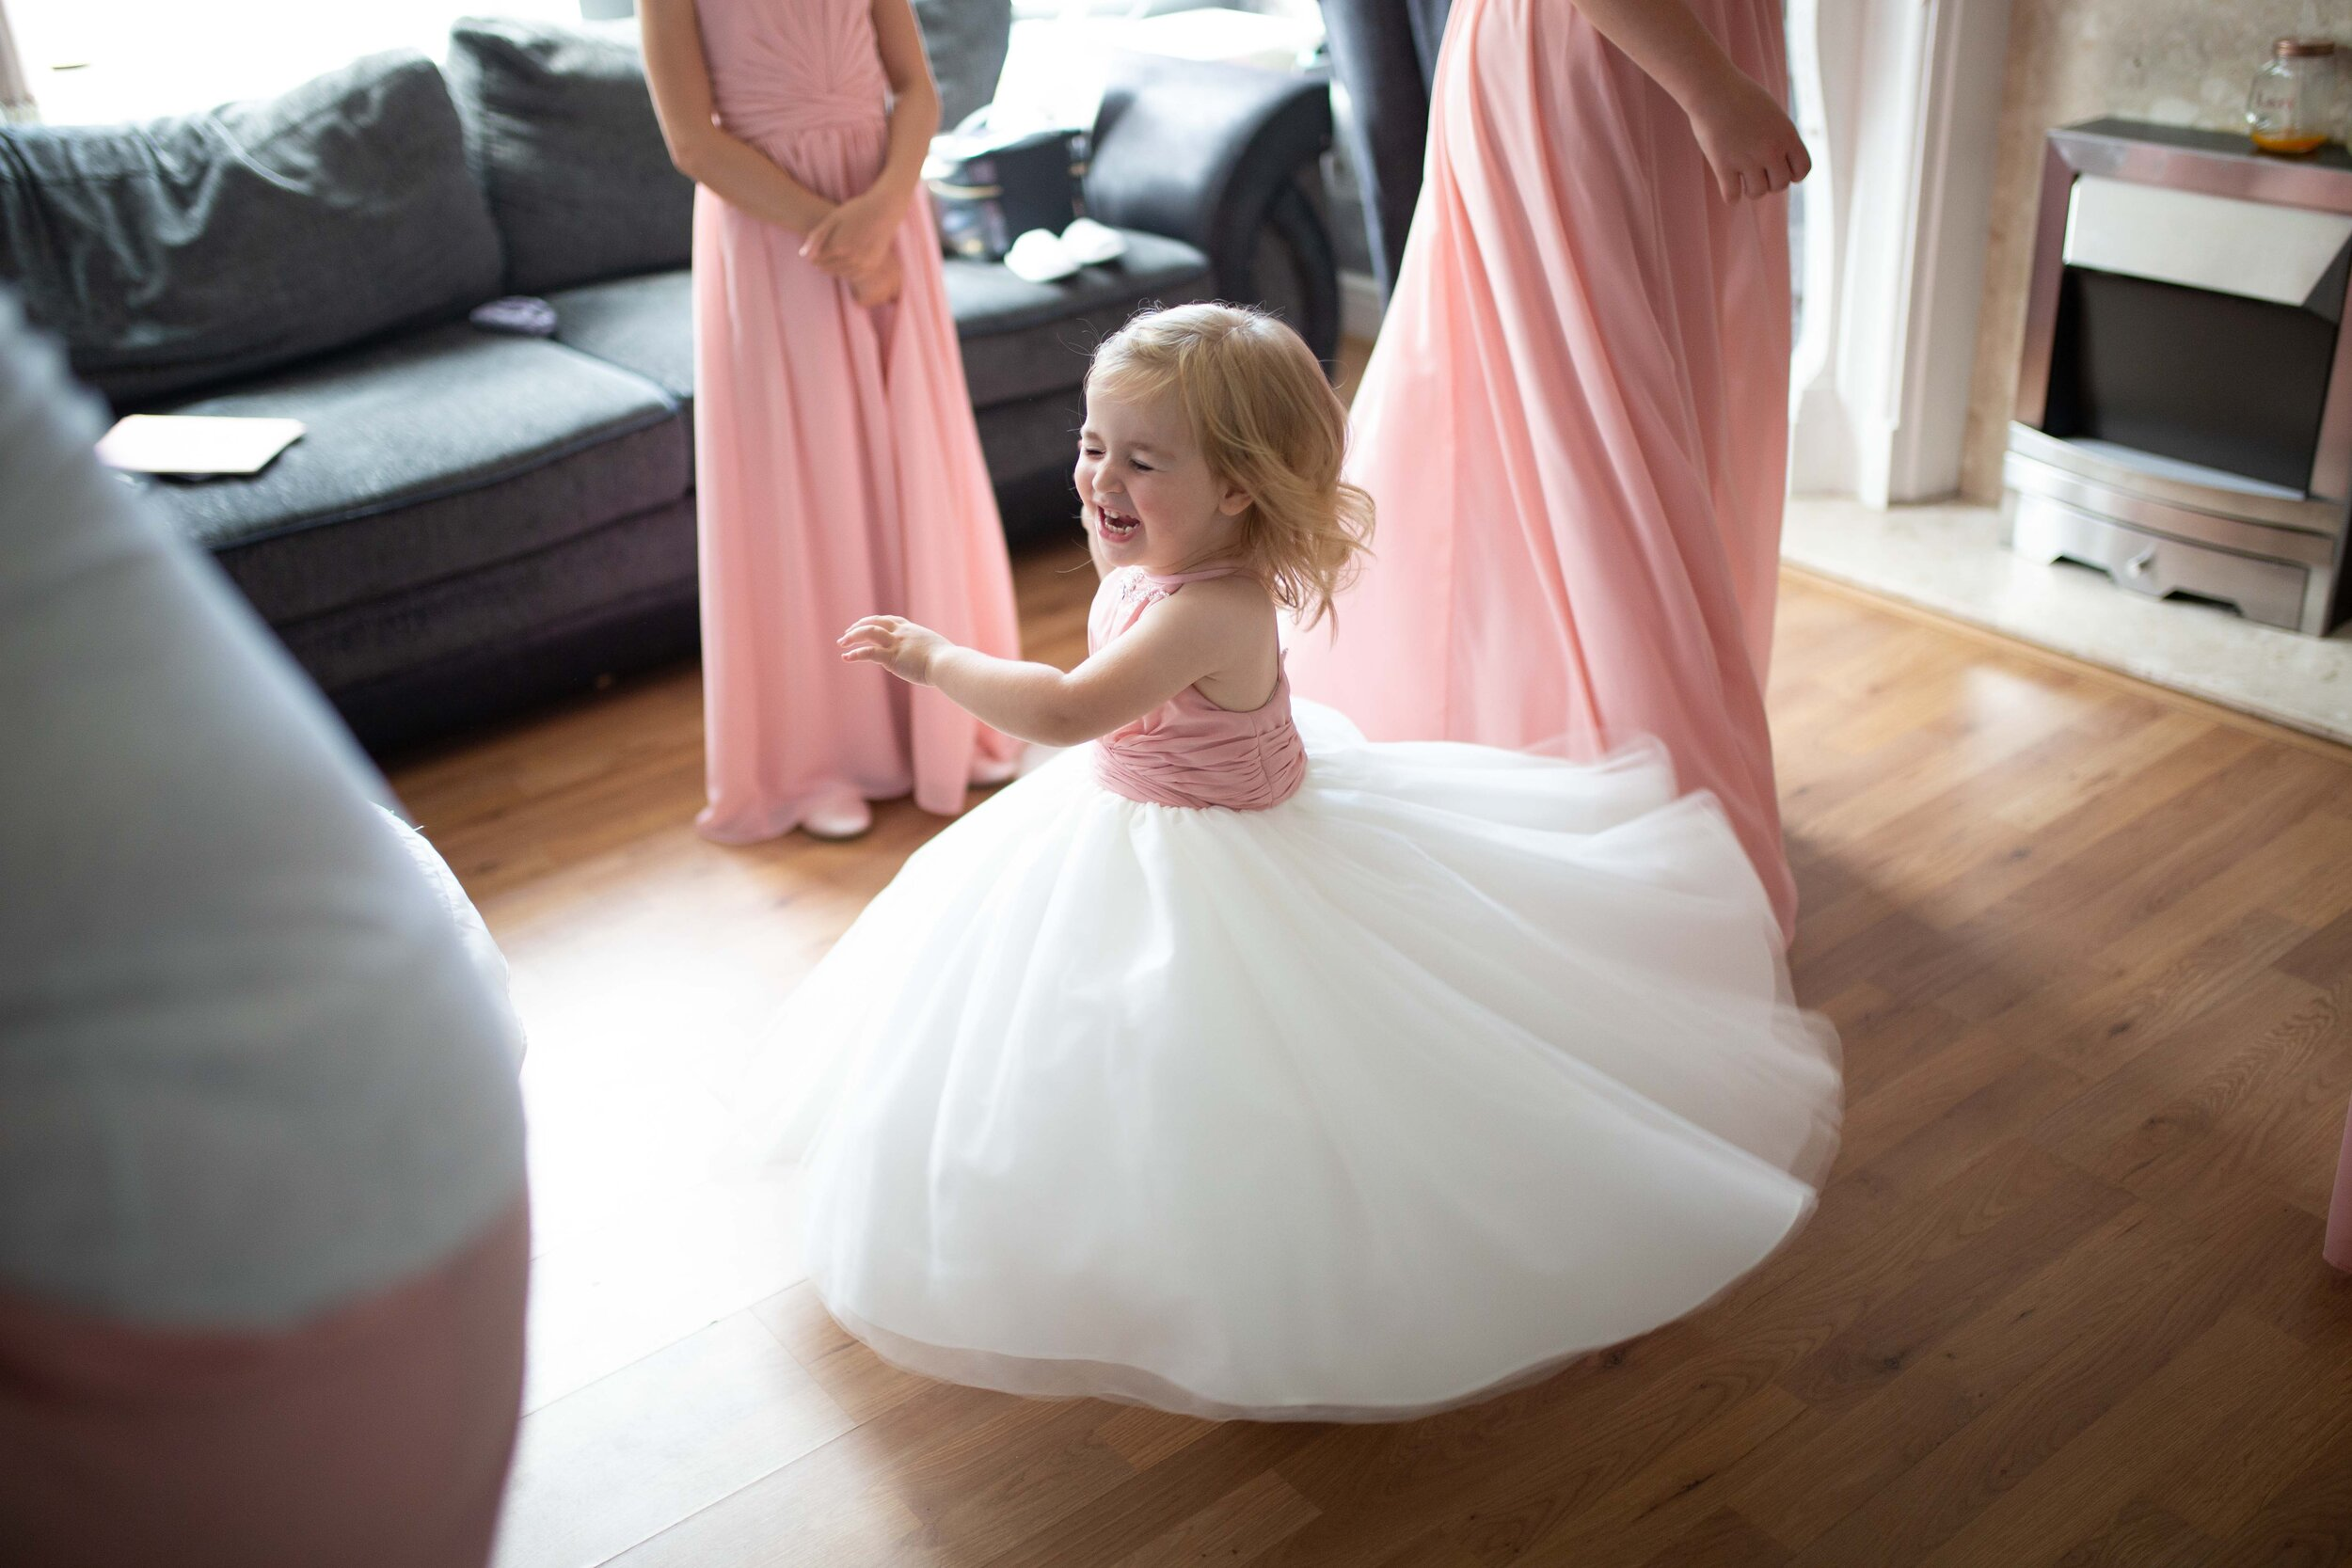 Lea Cooper photography - wedding photography - st Lawrence church dalaston West Midlands Willenhall Wednesday wedding photographer Brookfields club house cannock road - 7.JPG